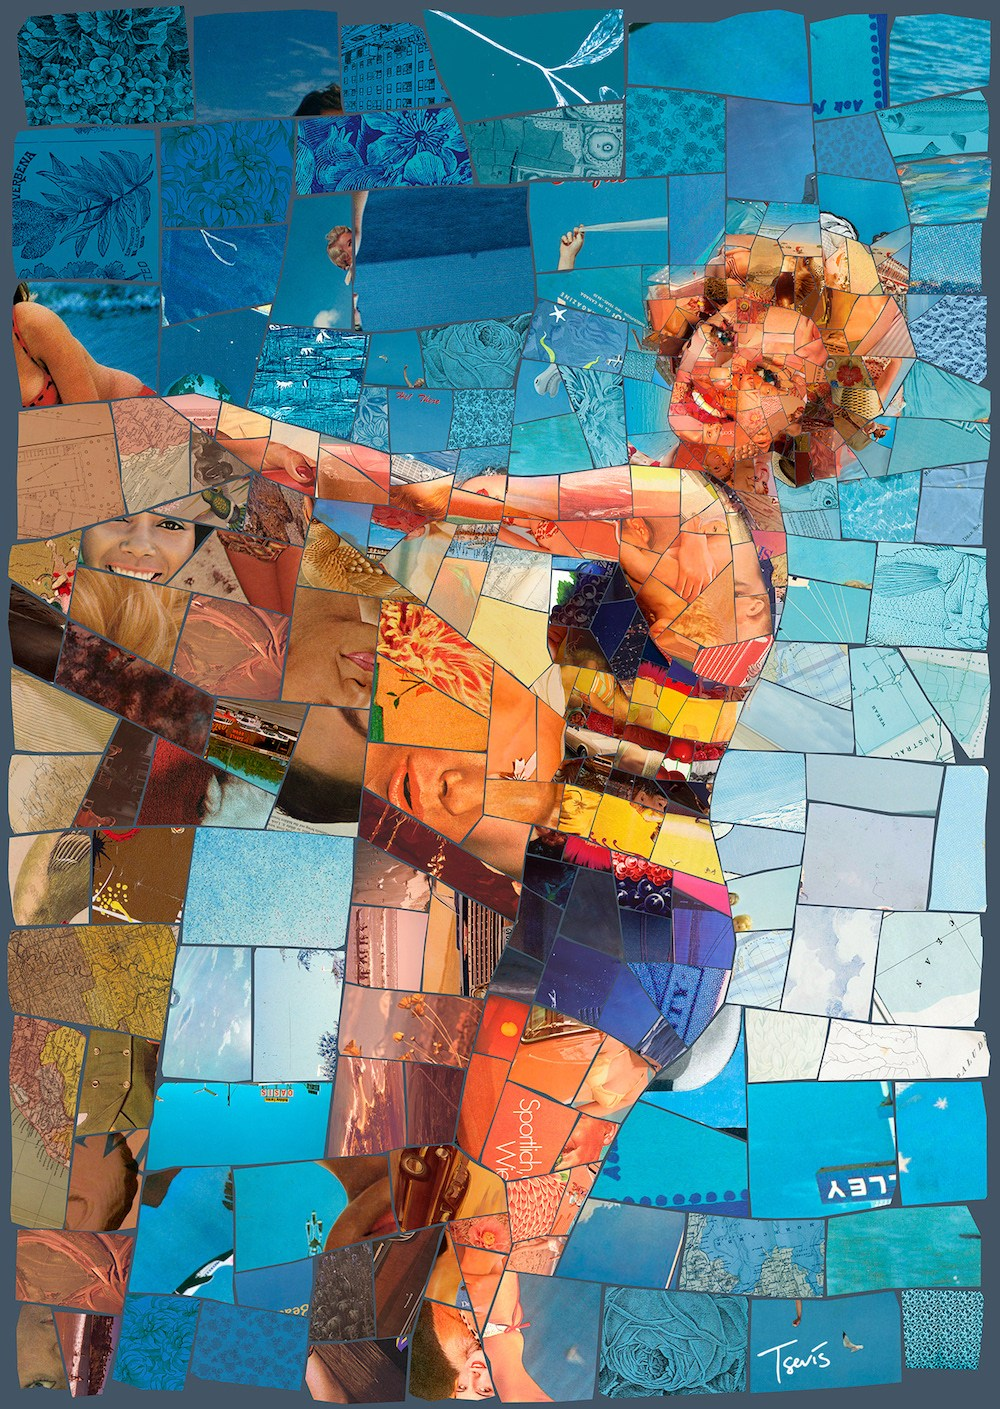 Charis-tsevis-tetro-collages-3